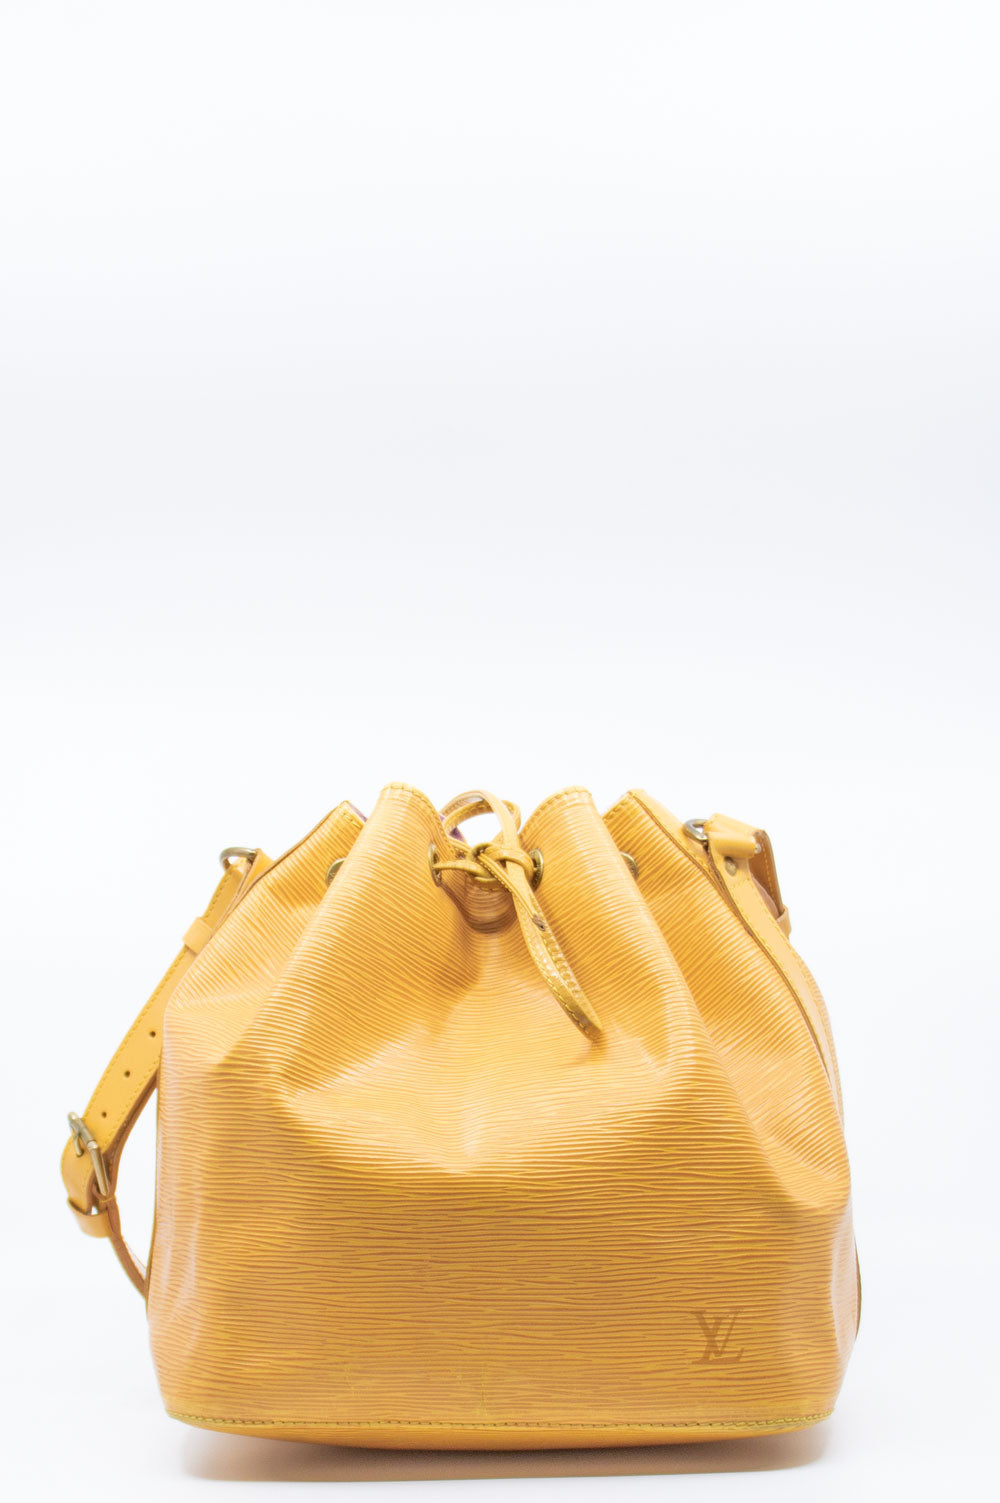 LOUIS VUITTON Petit Sac Noé Tassil Yellow